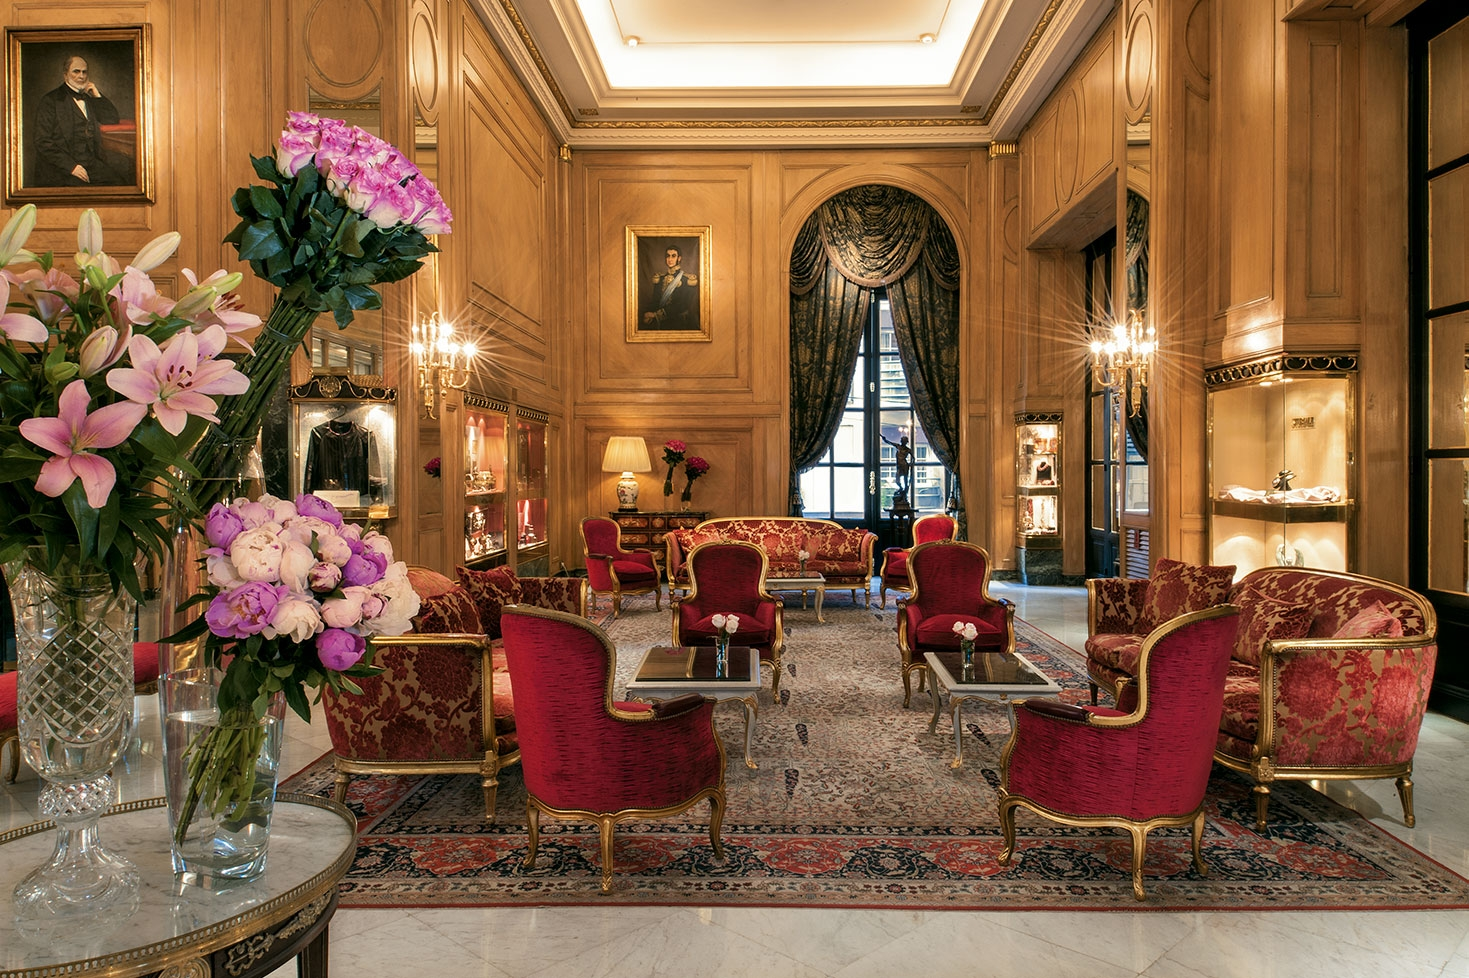 Hotel Alvear Palace - Buenos Aires